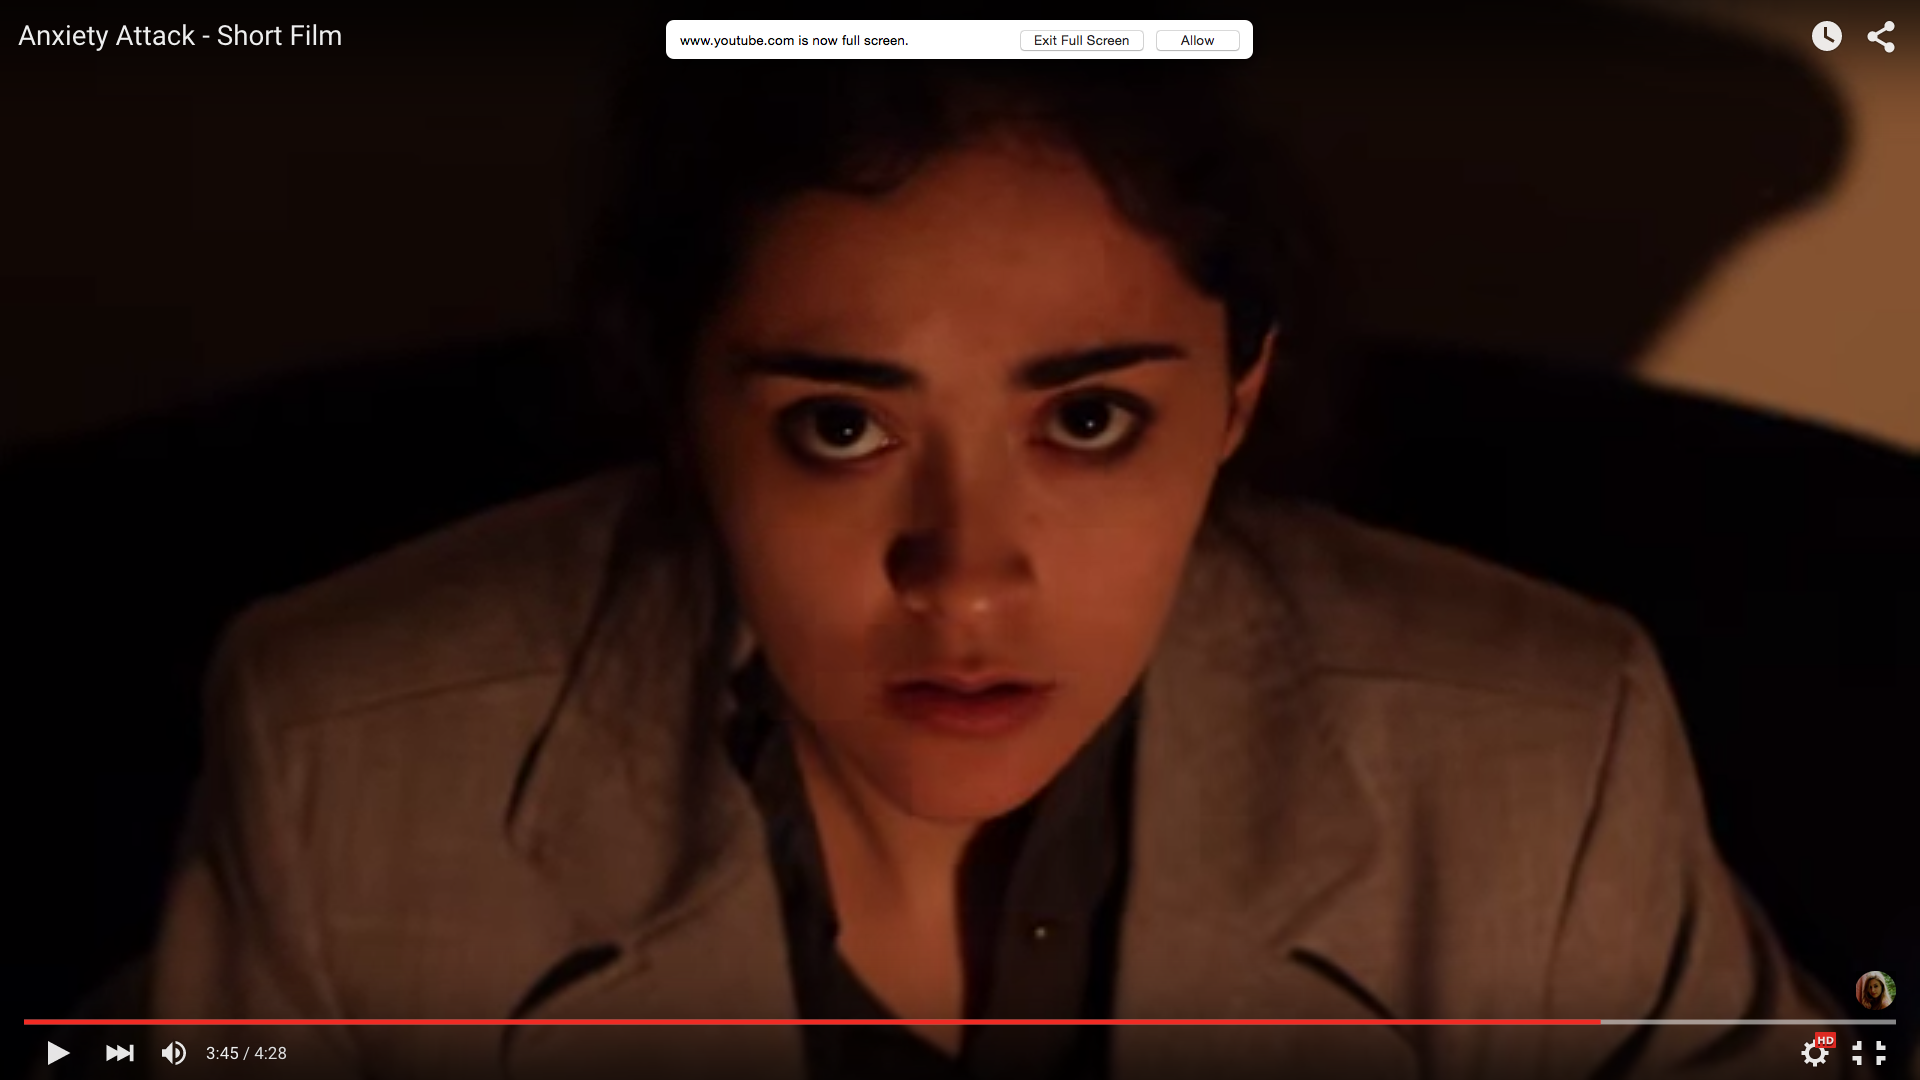 Anxiety Attack short film- High angle making her feel venerable. the whole world is looking down on her. looking into her soul.